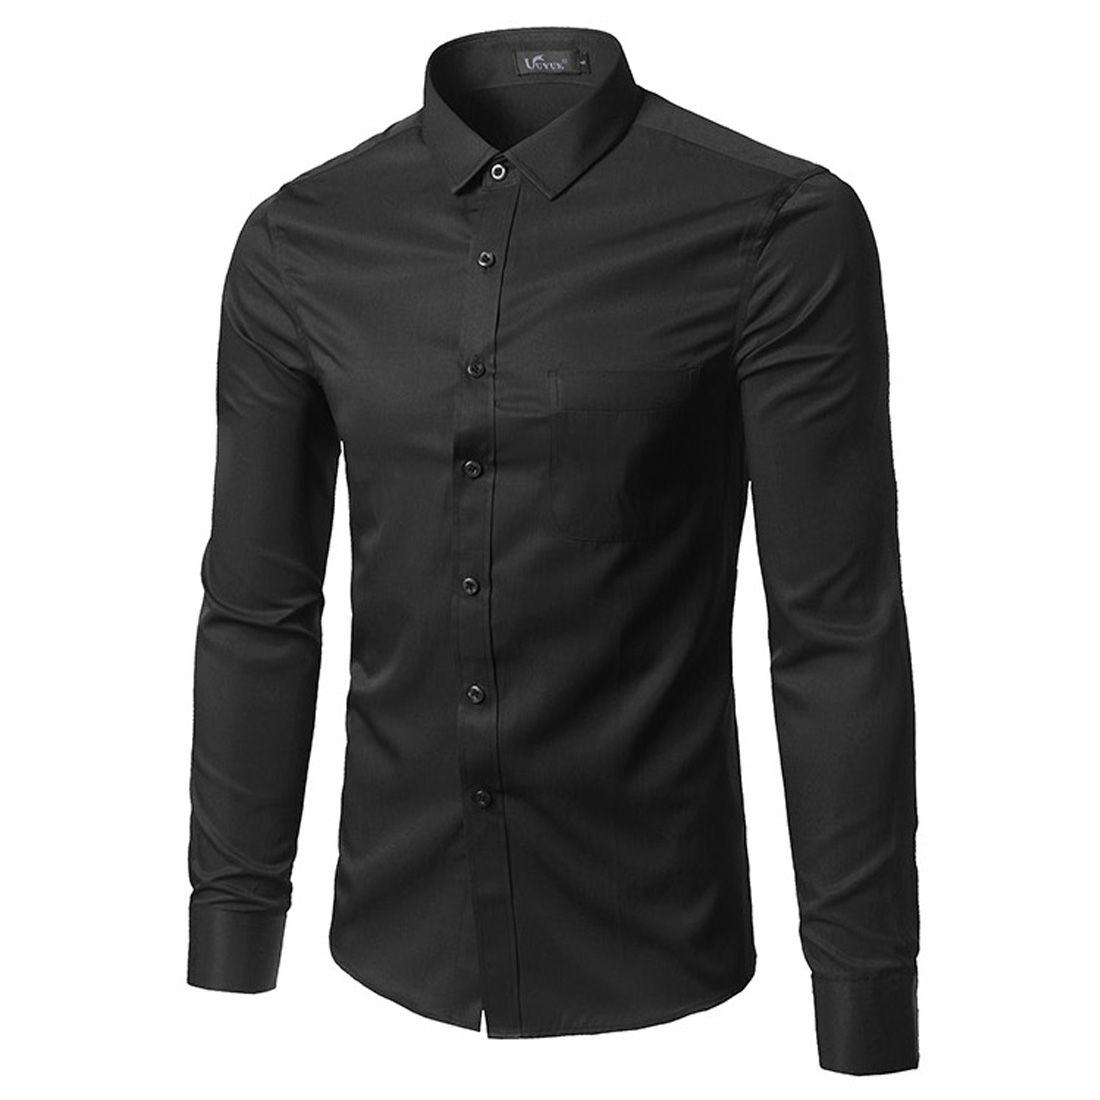 Shop for mens black shirt online at Target. Free shipping on purchases over $35 and save 5% every day with your Target REDcard.